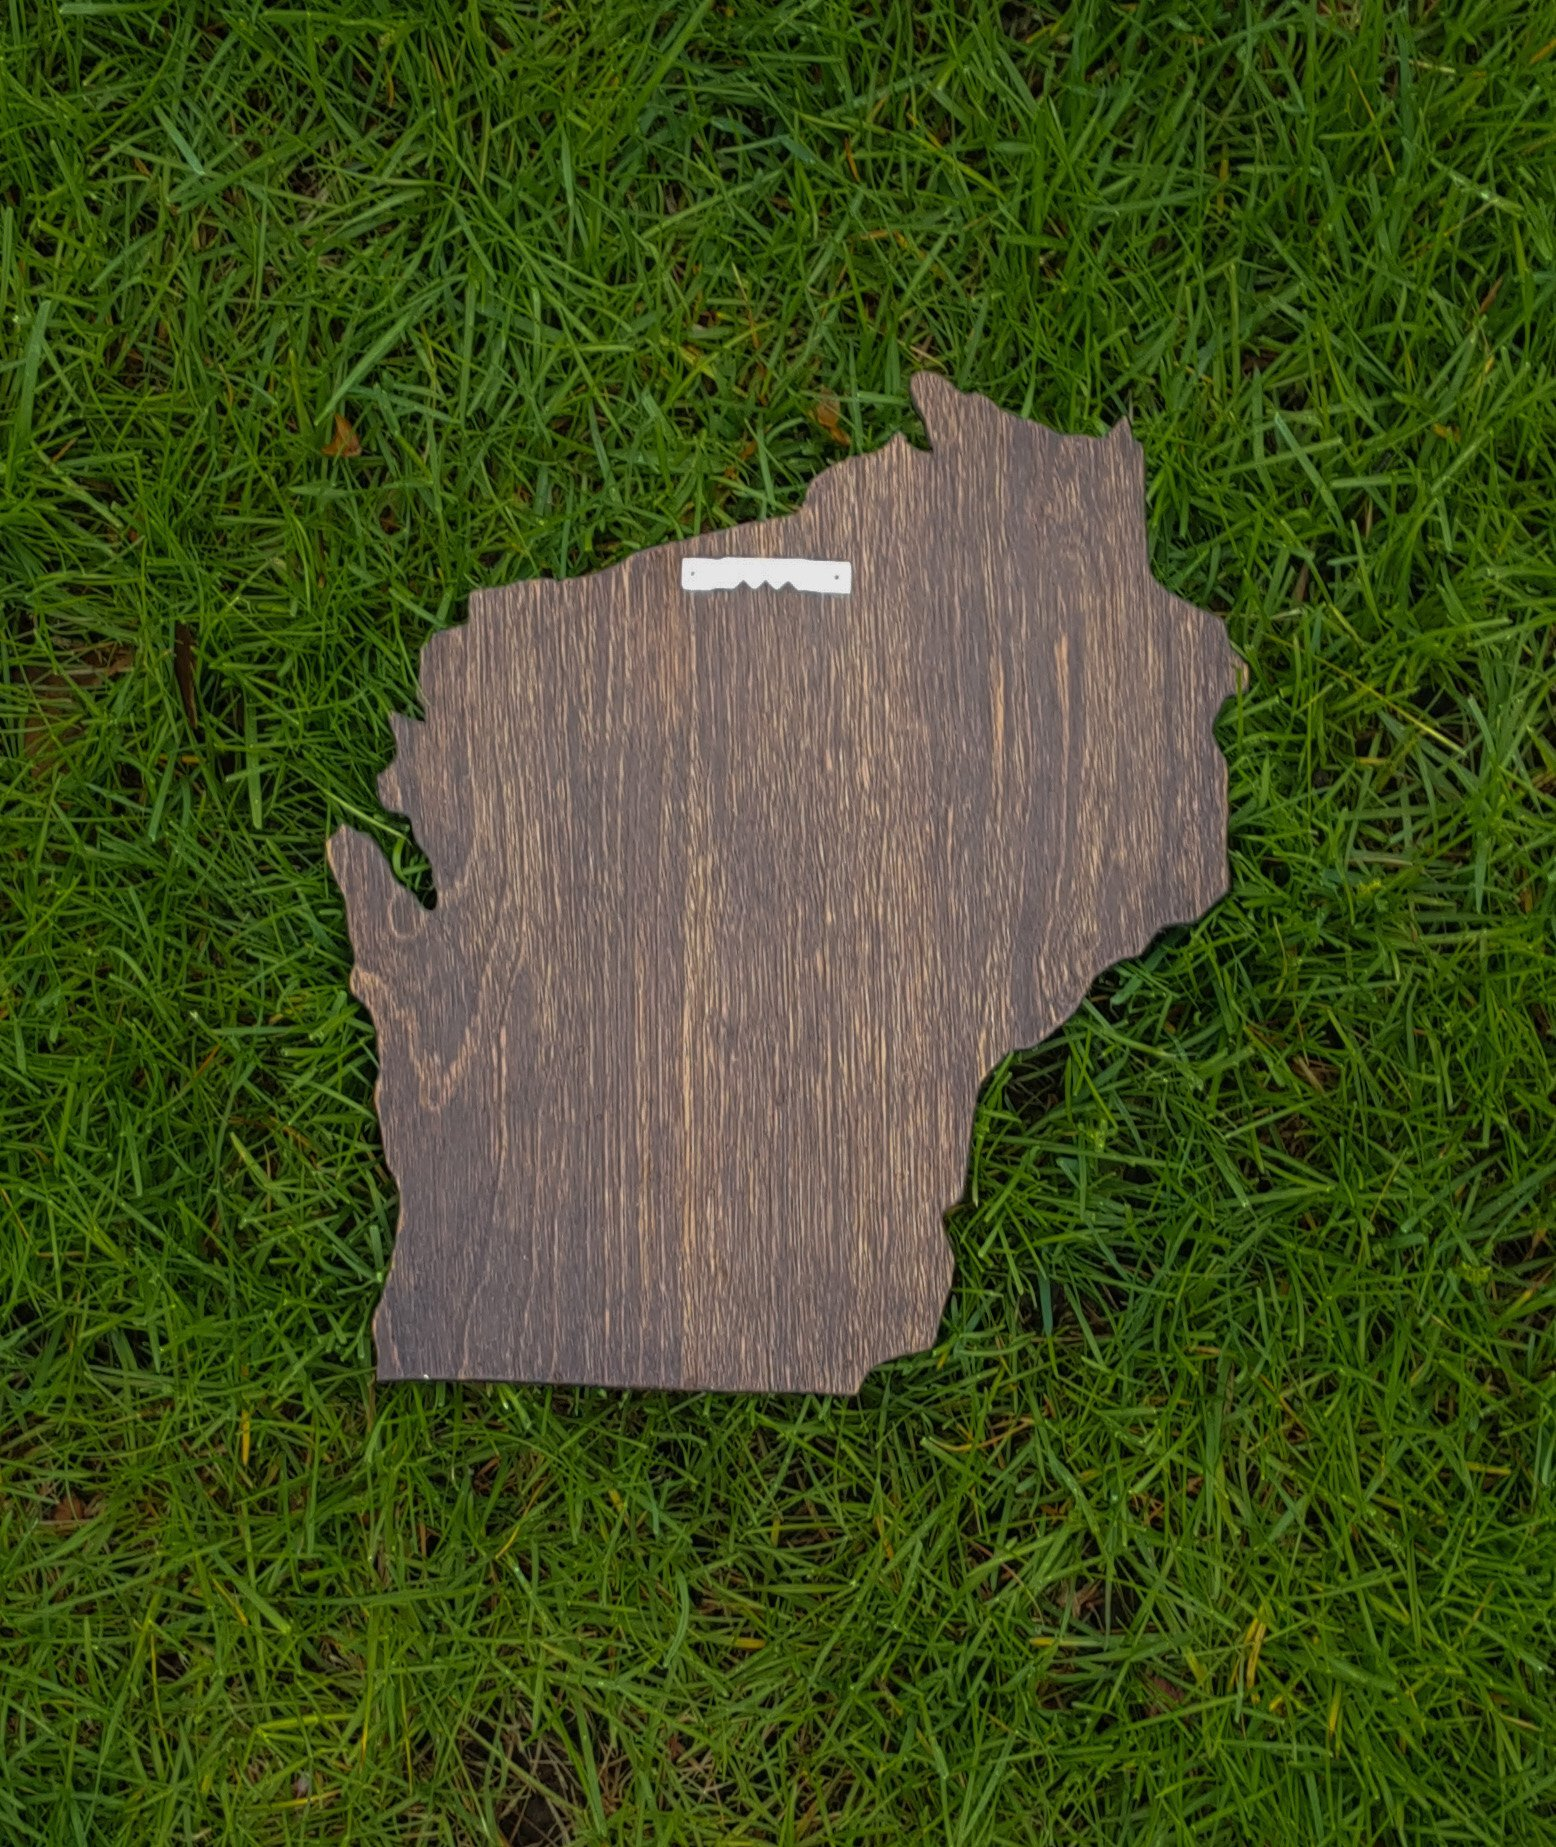 Rustic Wisconsin State Wooden Gallery Wall Art Cutout Office College Dorm Home Bedroom Decor by Natural Accents HD (Image #2)